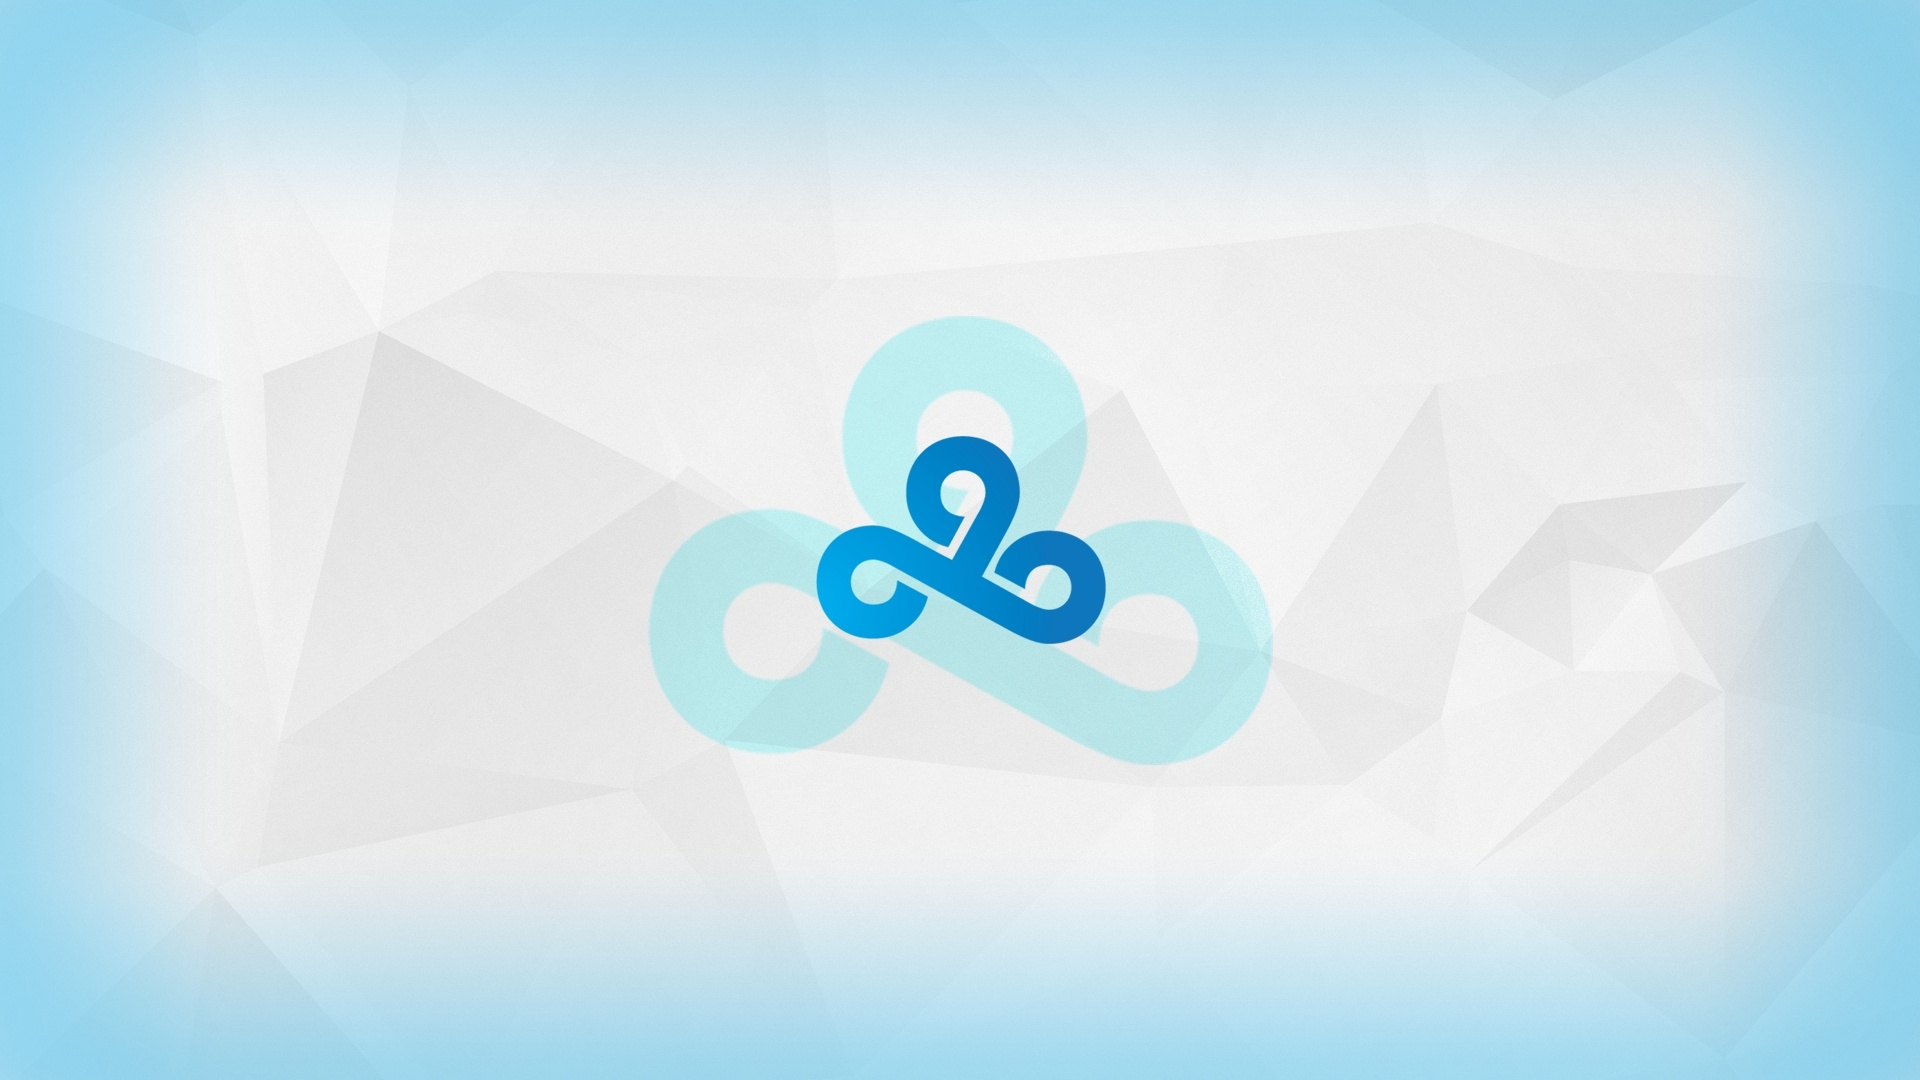 Cloud9 Backgrounds